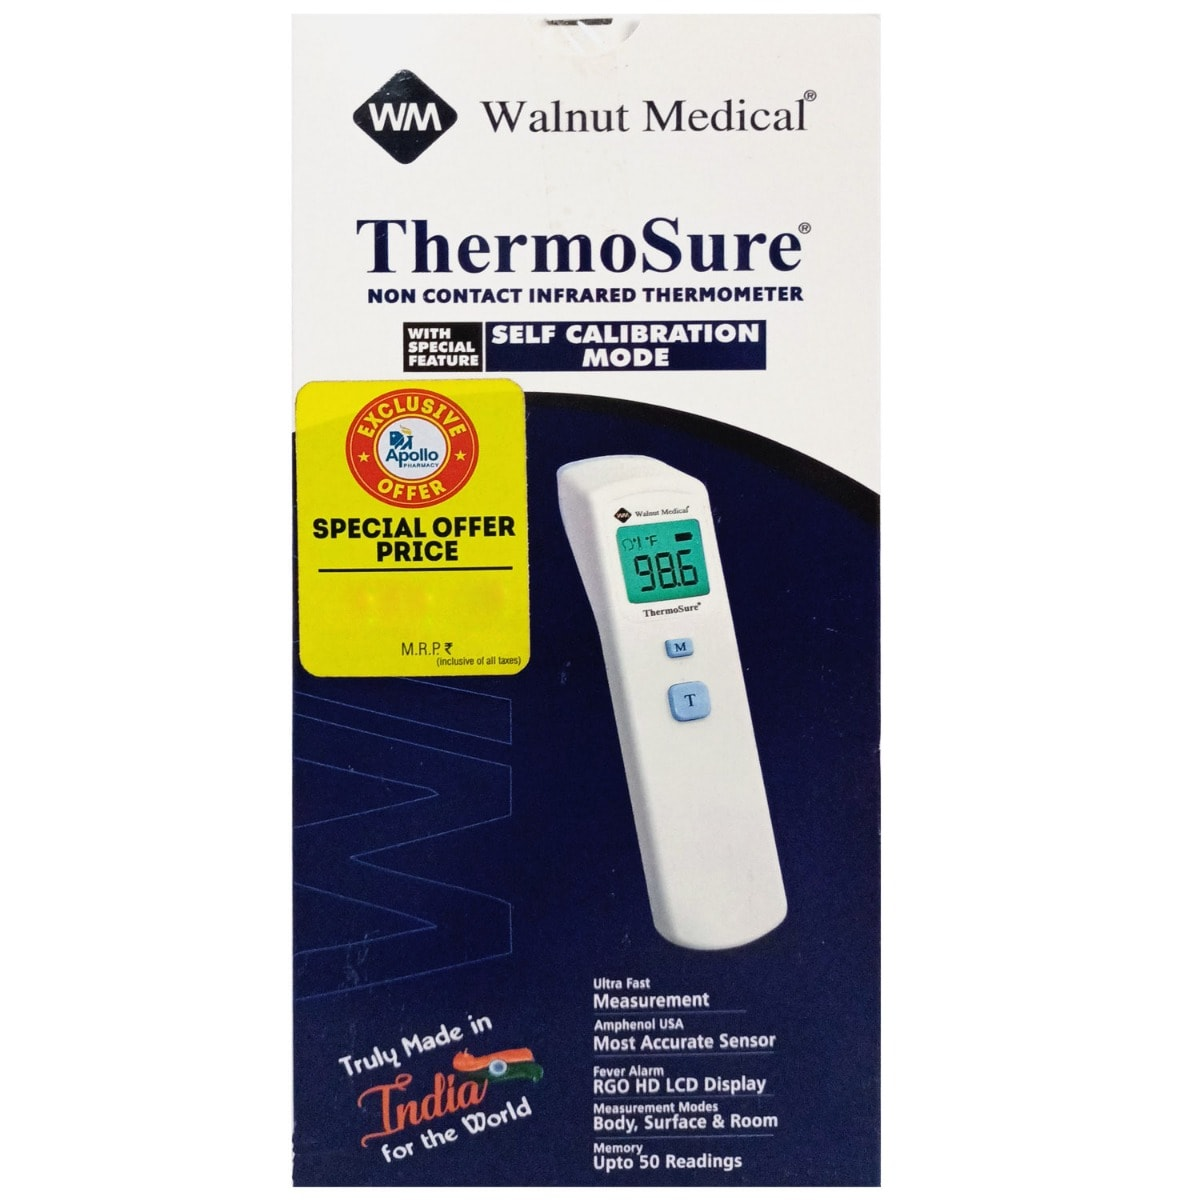 Apollo Life Thermosure Non Contact Infrared Thermometer TS-03, 1 Count